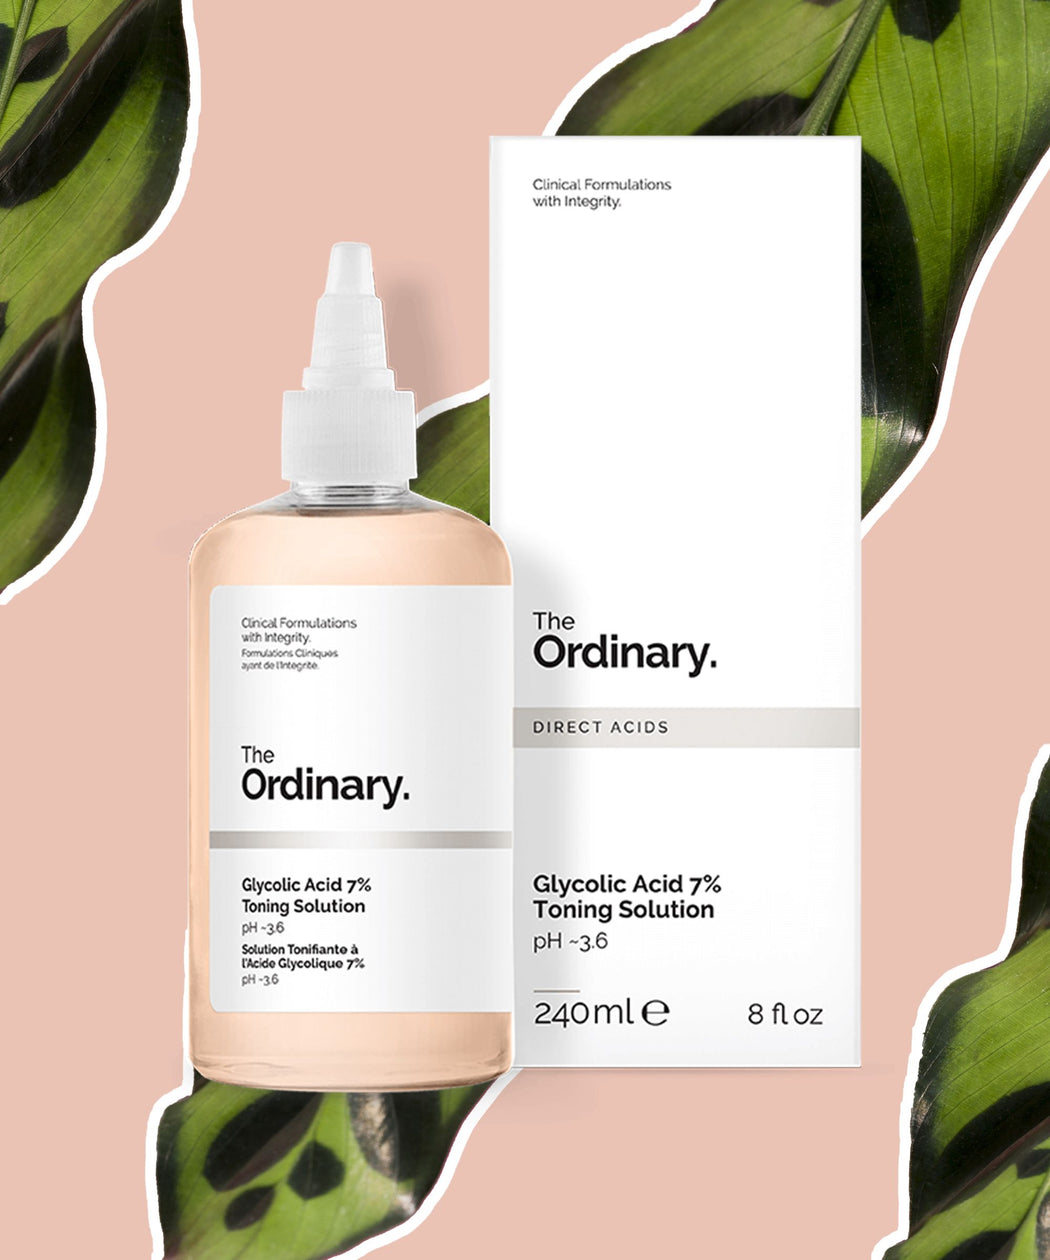 [The Ordinary - Deciem] Glycolic Acid 7% Toning Solution - 240 ml